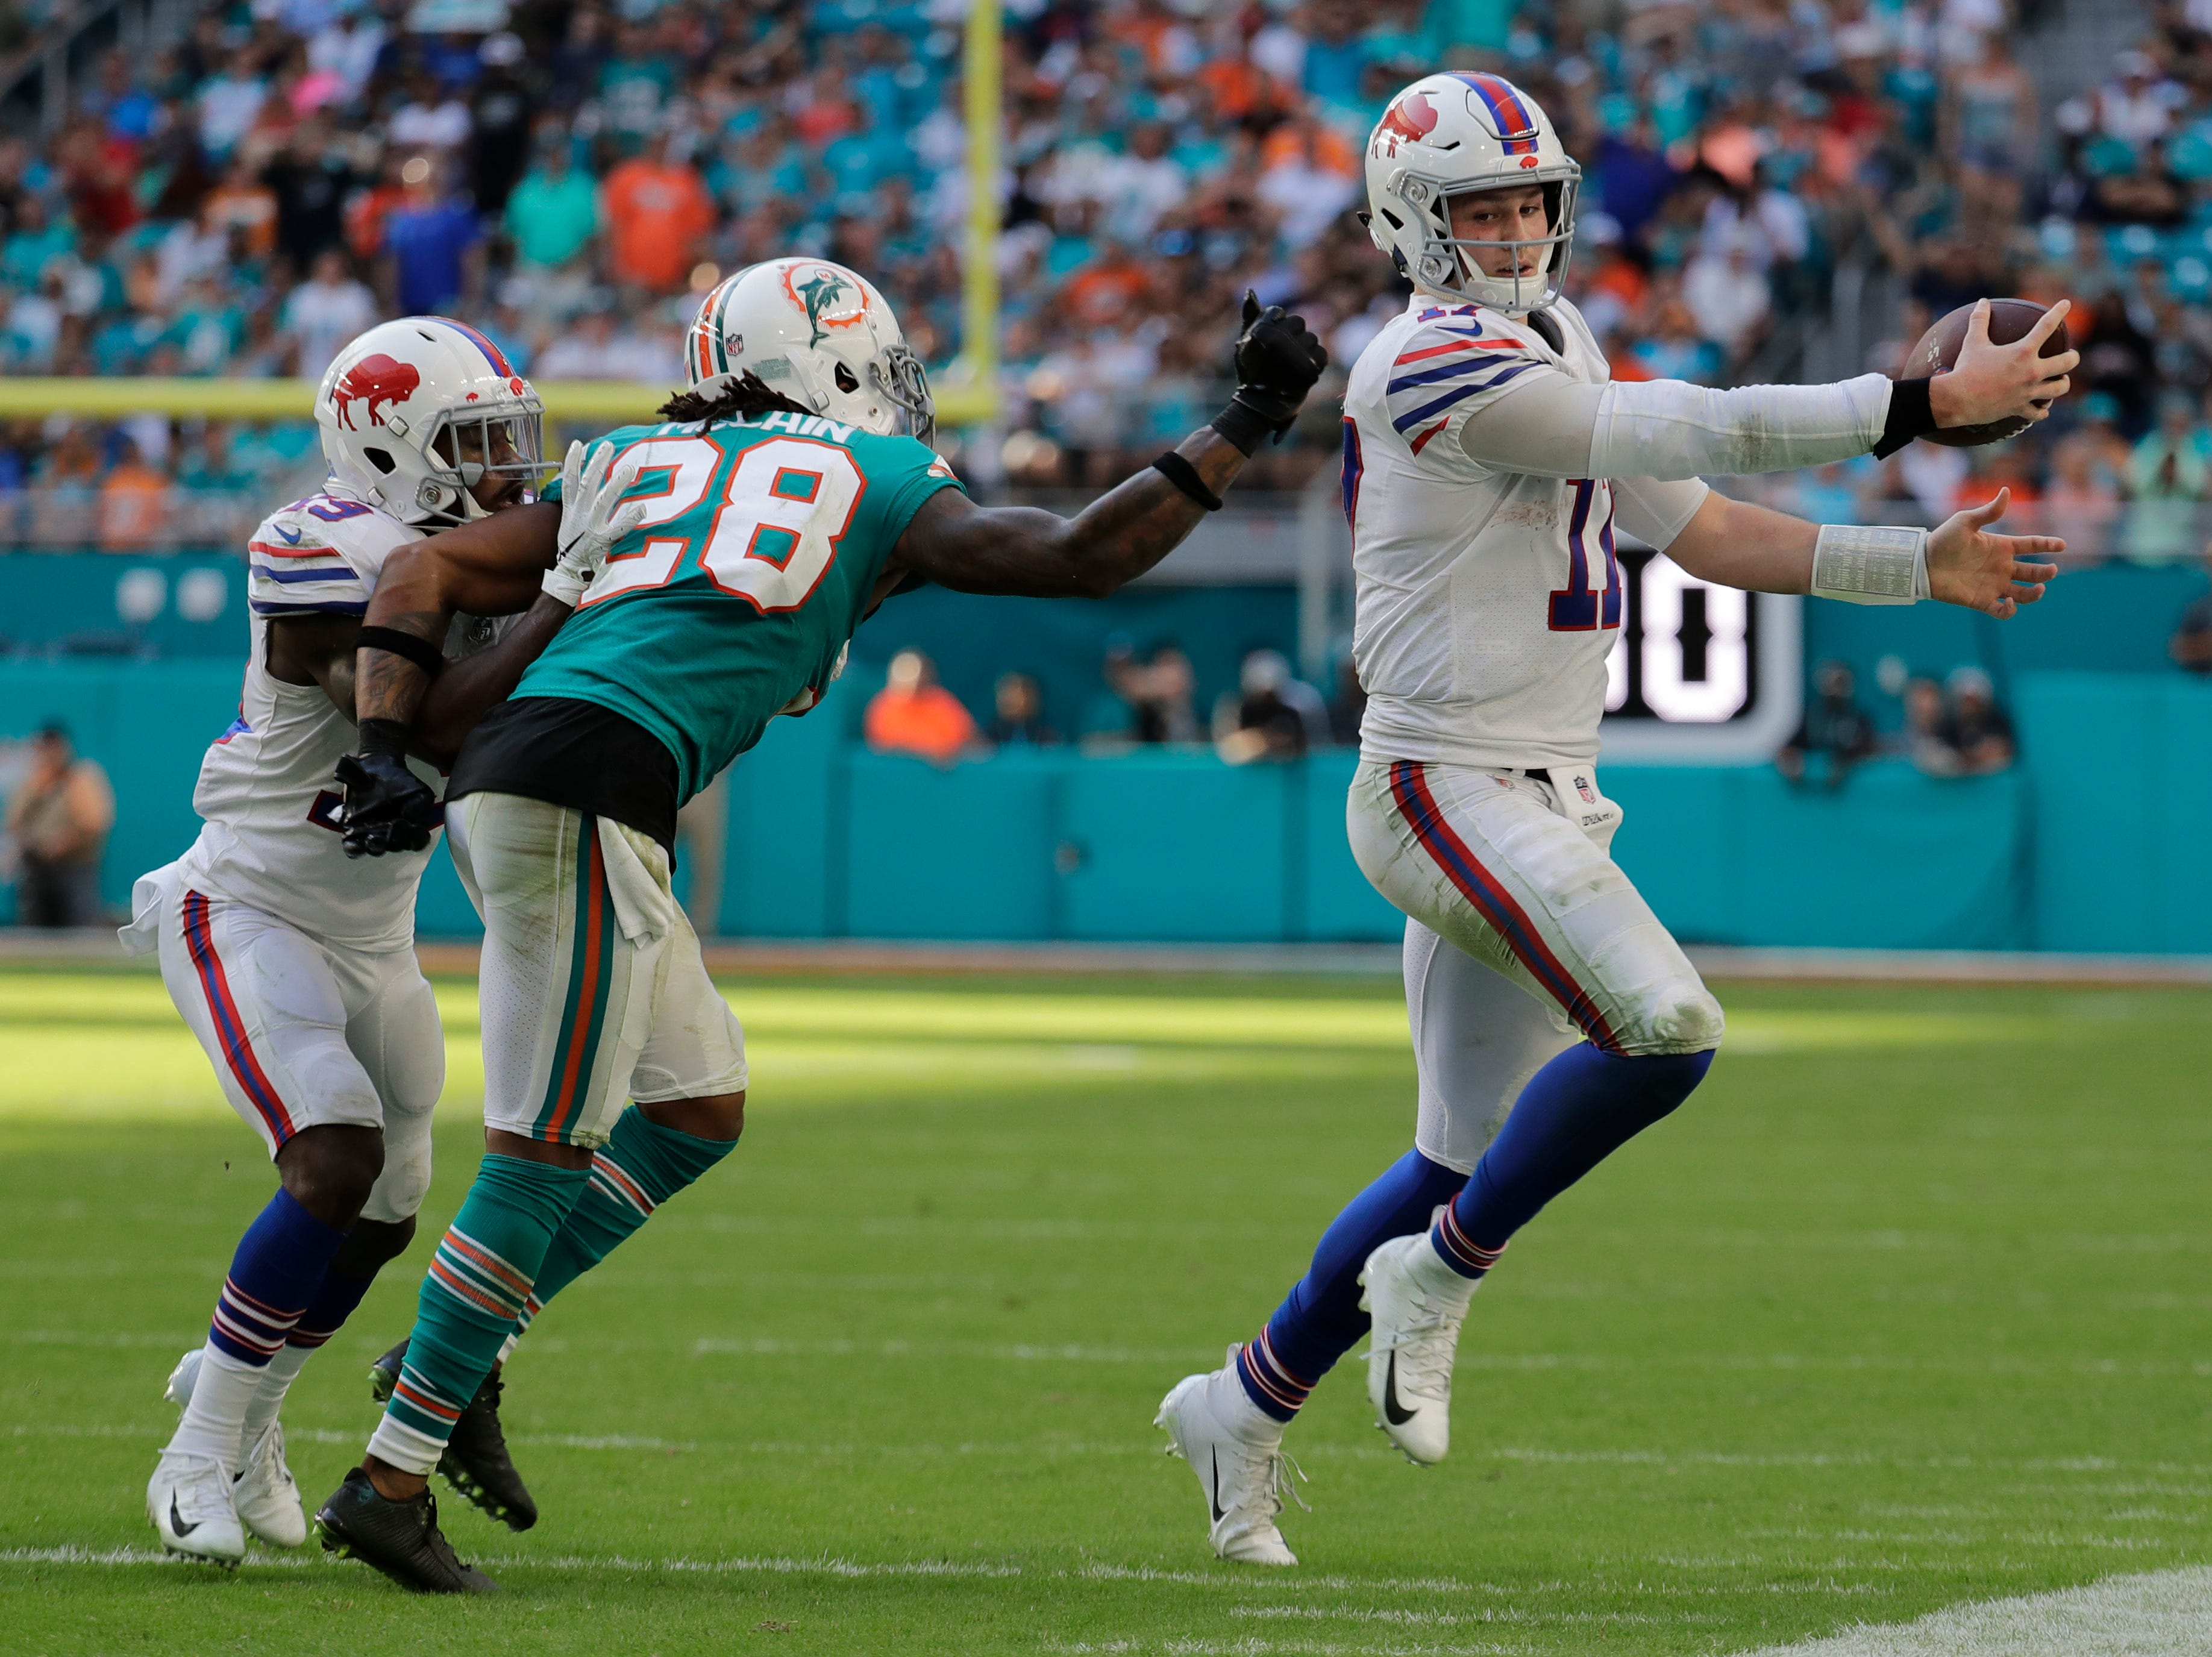 Buffalo Bills quarterback Josh Allen (17) runs the ball as Miami Dolphins cornerback Bobby McCain (28) attempts to tackle, during the second half of an NFL football game, Sunday, Dec. 2, 2018, in Miami Gardens, Fla. (AP Photo/Lynne Sladky)